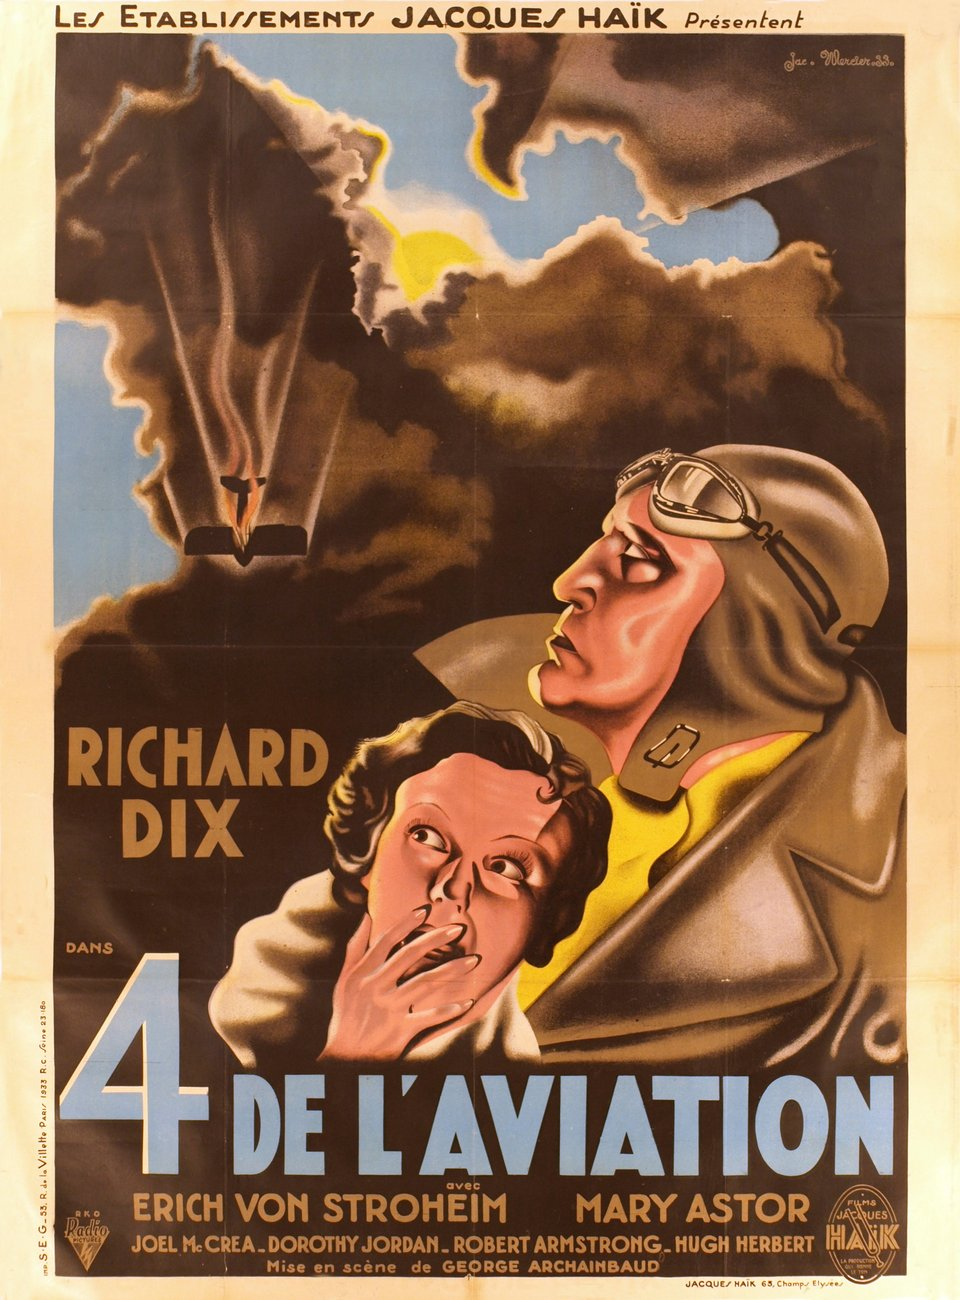 4 de l'Aviation, Richard Dix, avec Erich von Strohëim et Mary Astor – Vintage poster – Jean-Adrien MERCIER – 1932